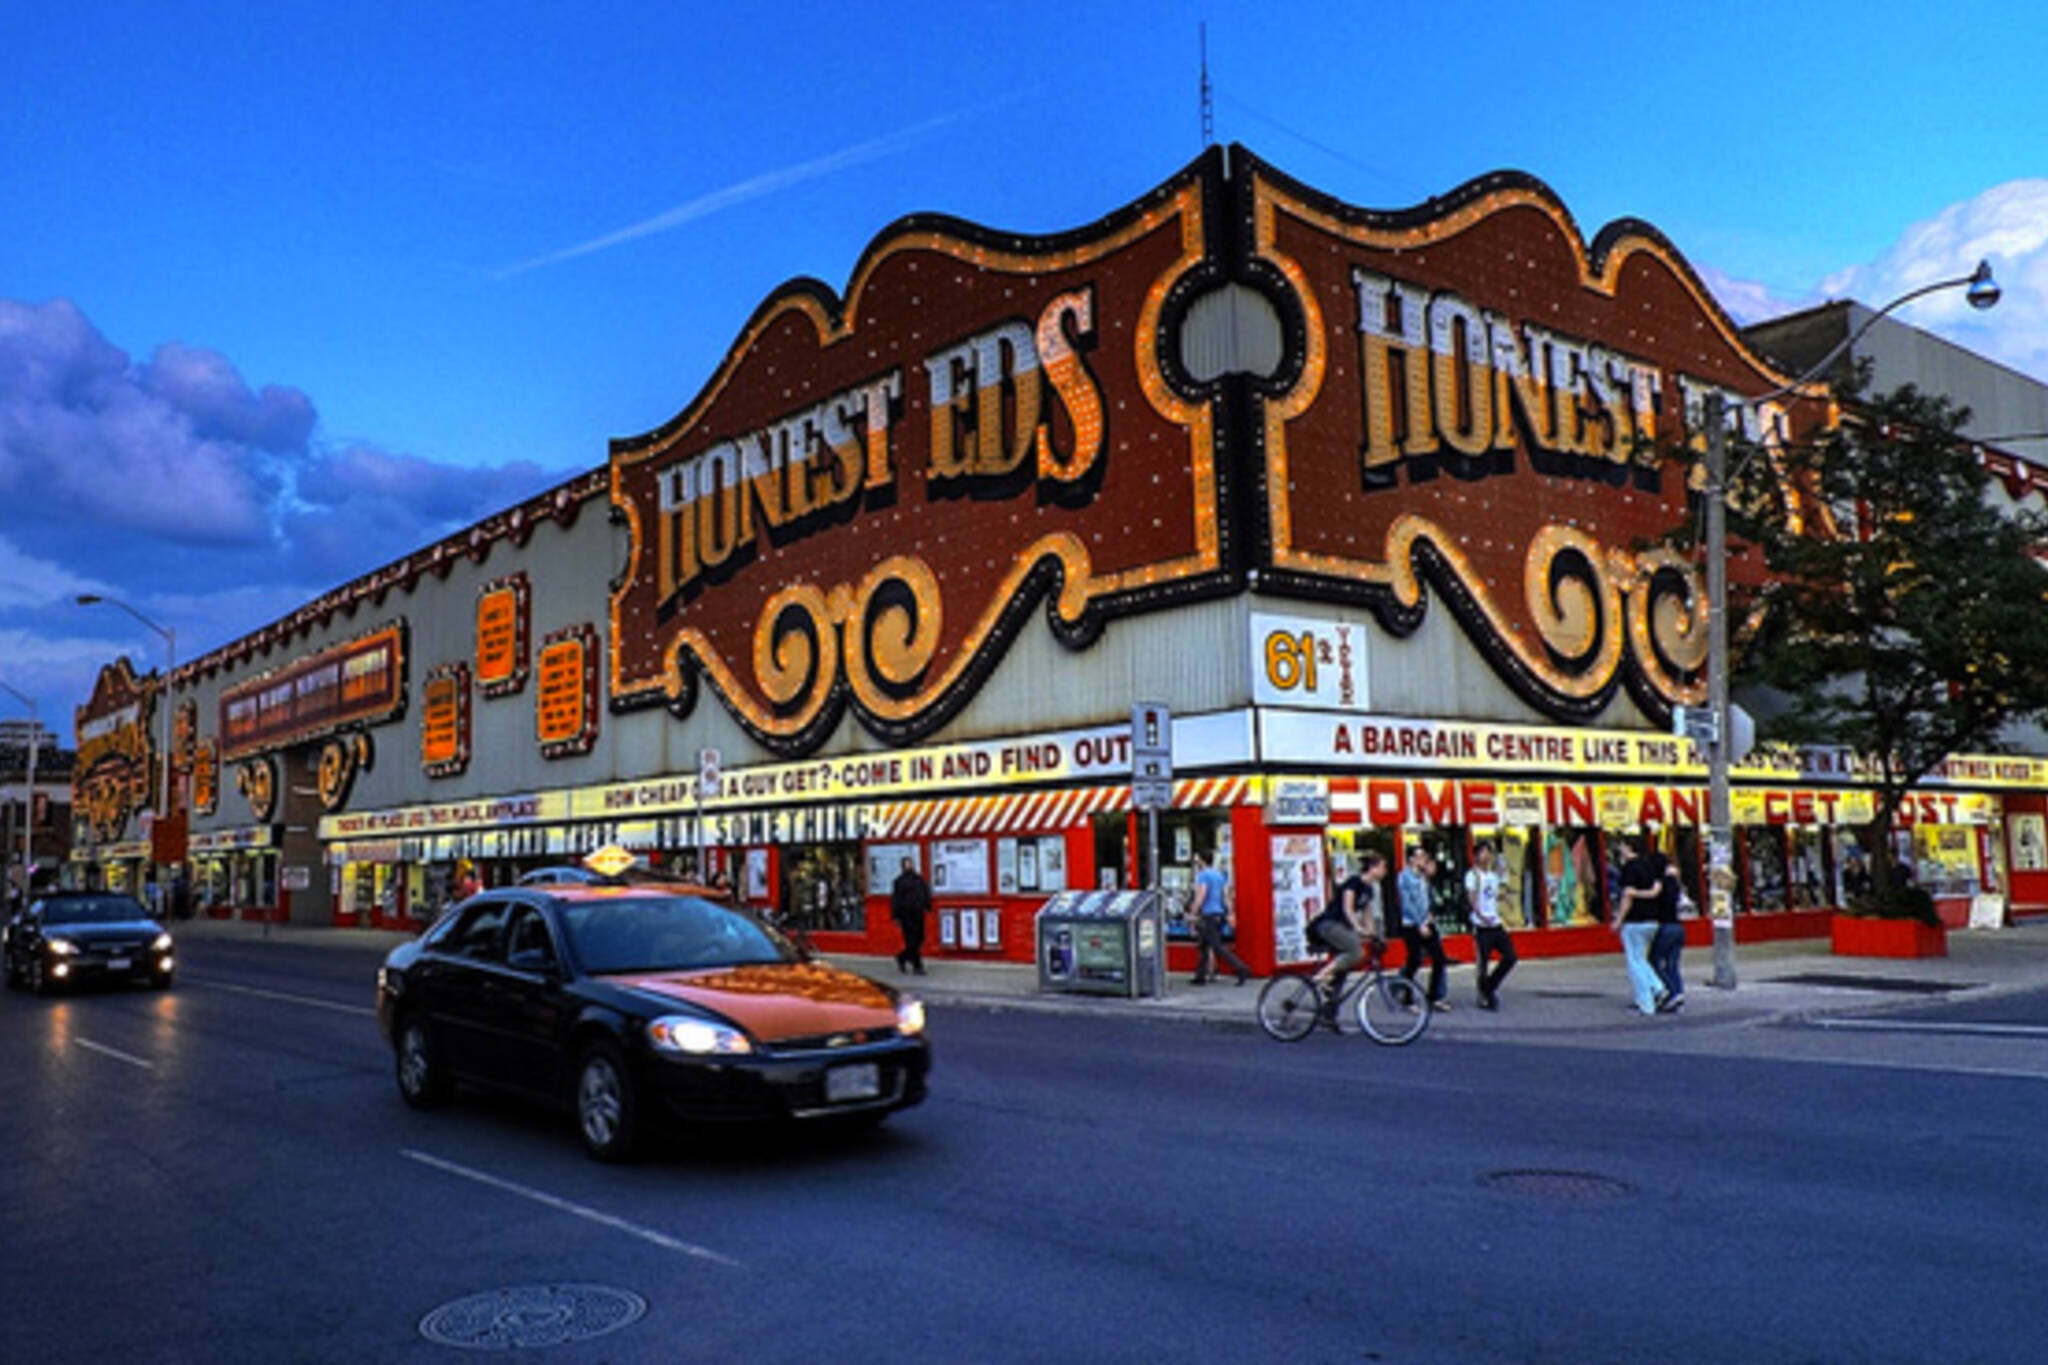 Honest Ed's Sold